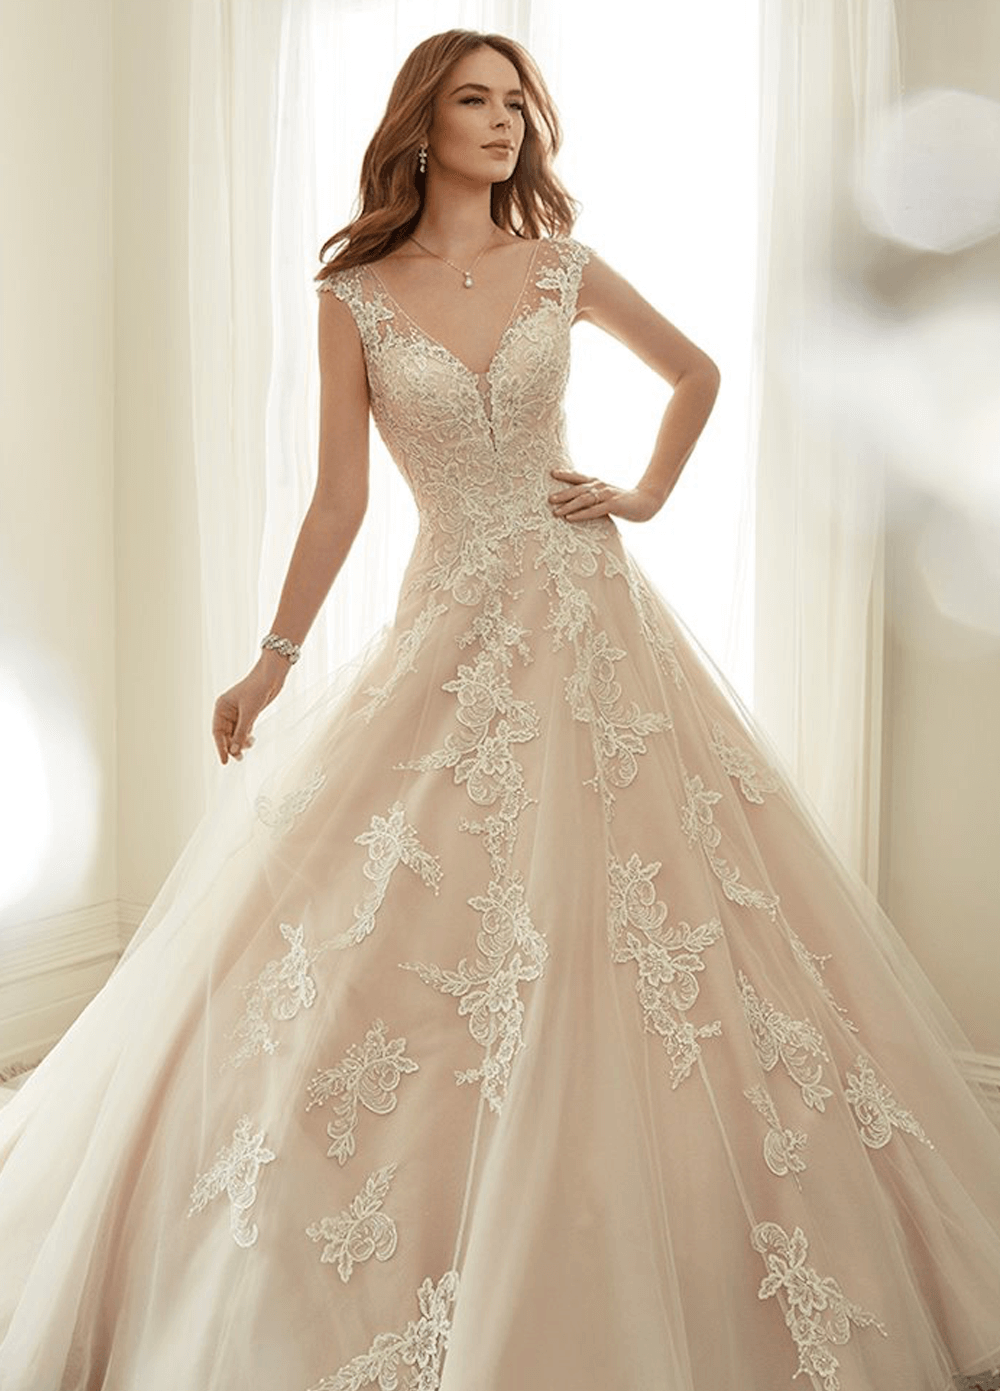 Estelle wedding dress front from the Sophia Tolli 2021 collection